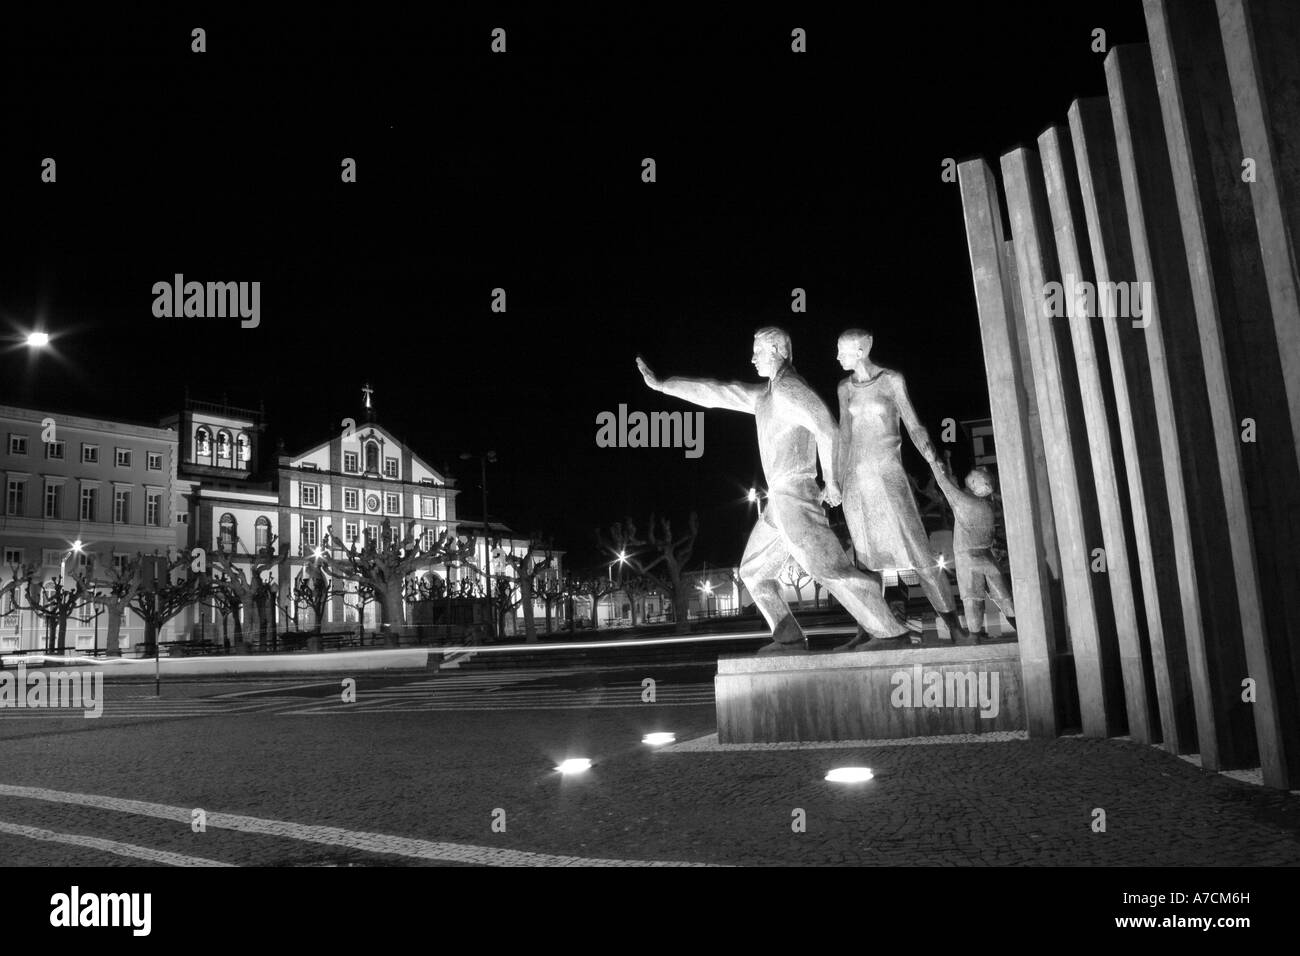 Night photo of the Emigrant Monument in downtown Ponta Delgada, Azores islands, Portugal - Stock Image